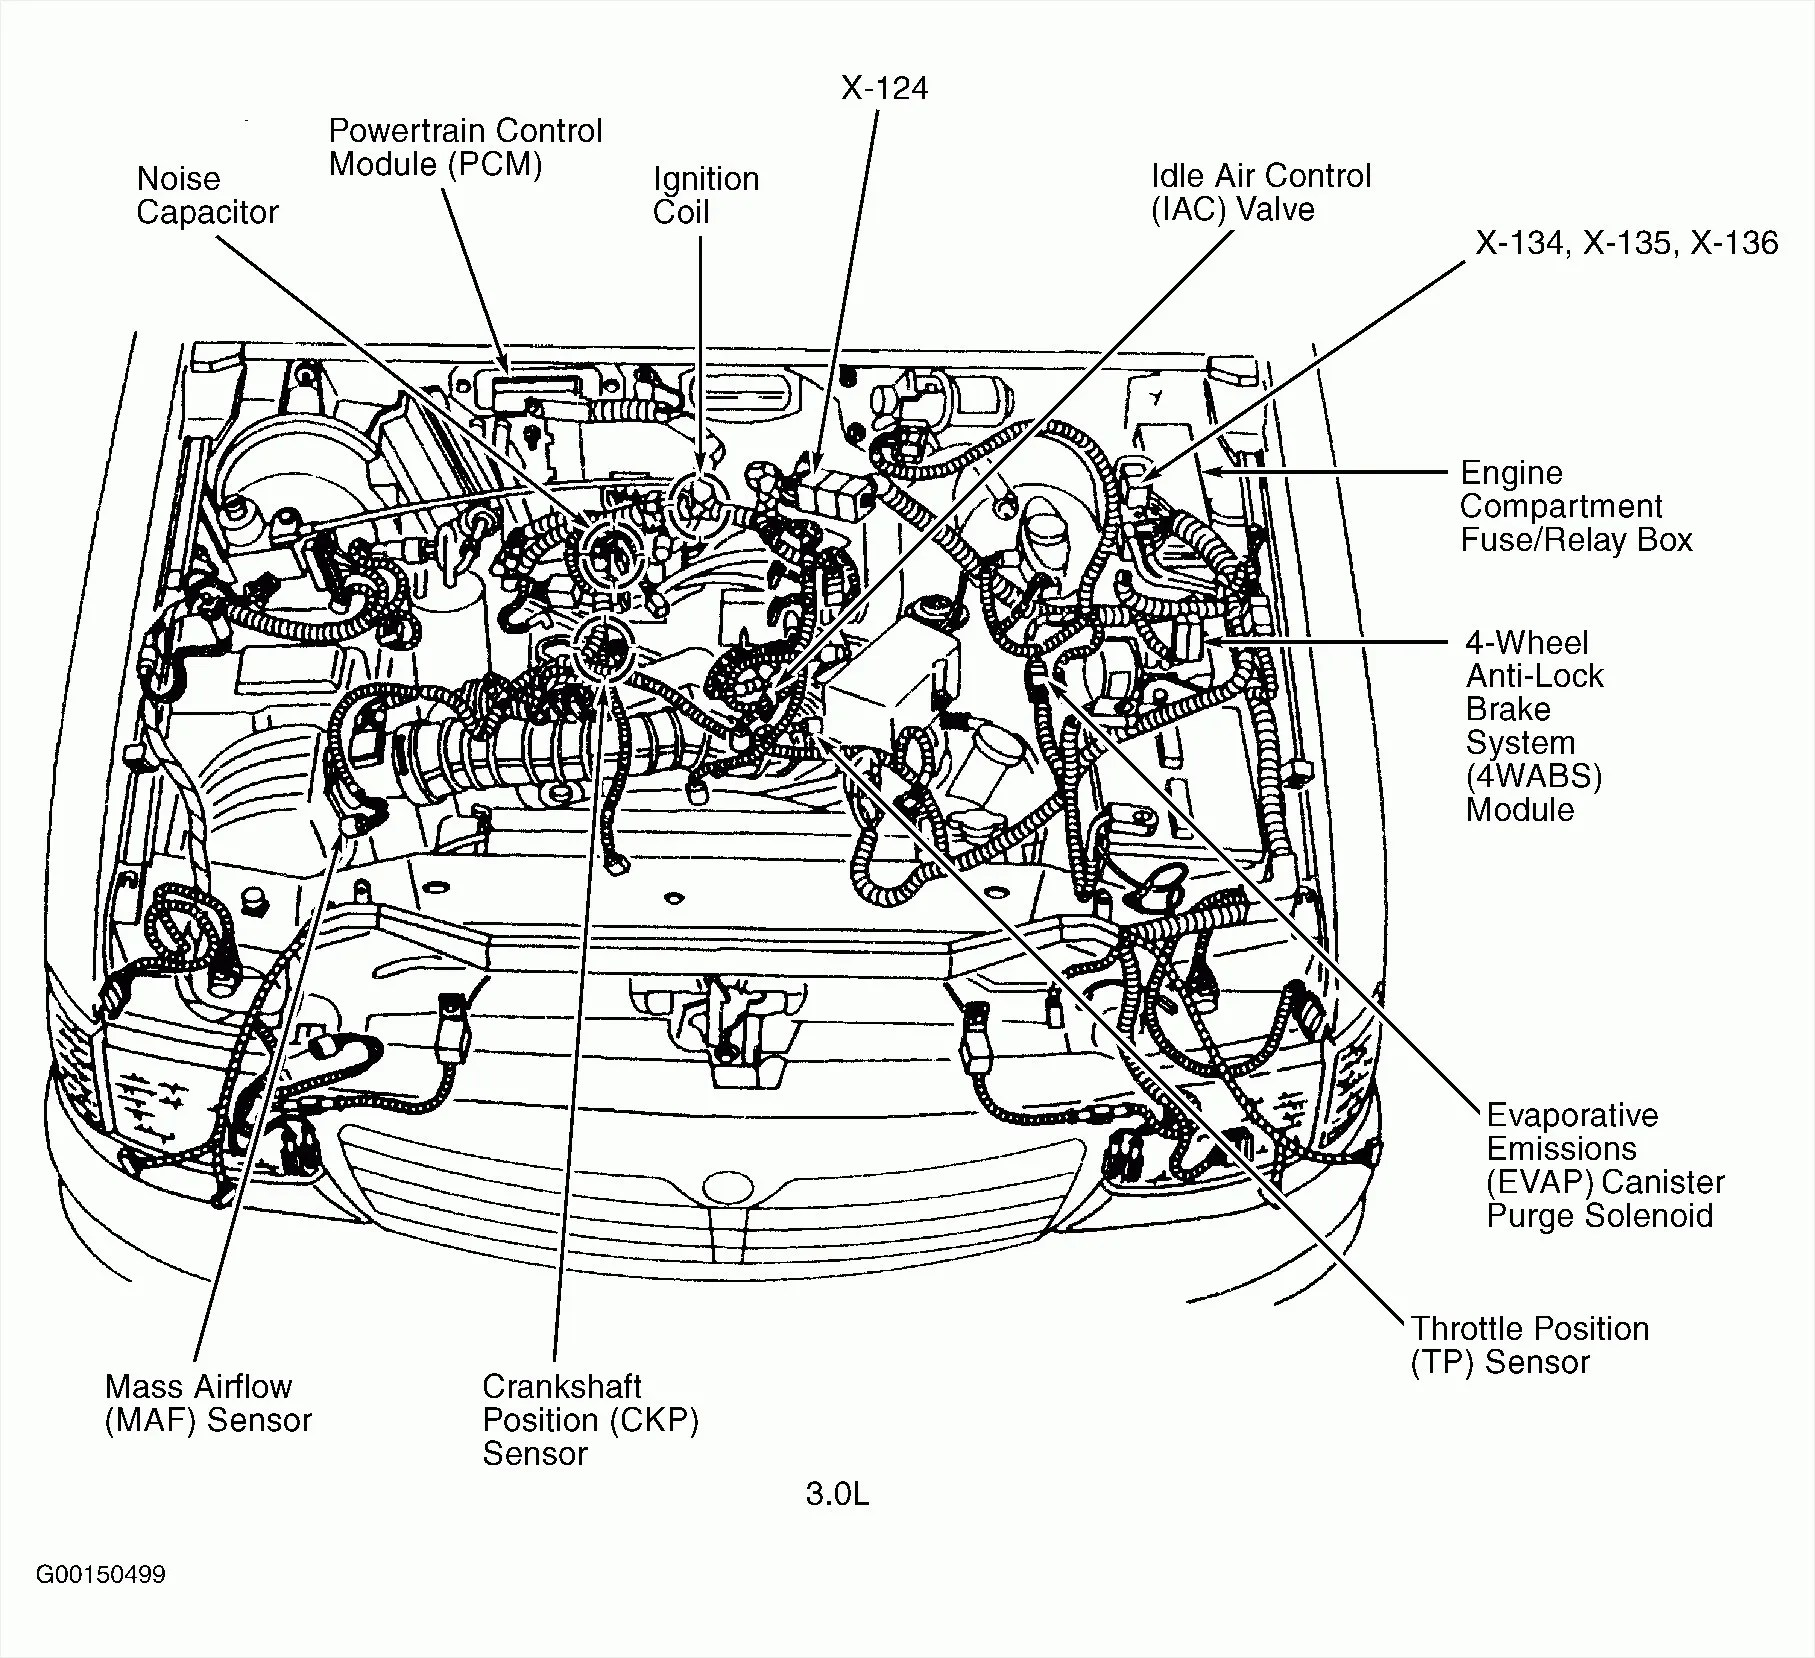 hight resolution of solenoid valve 2001 mazda tribute engine diagram wiring diagrams 2003 mazda protege engine diagram 2001 mazda